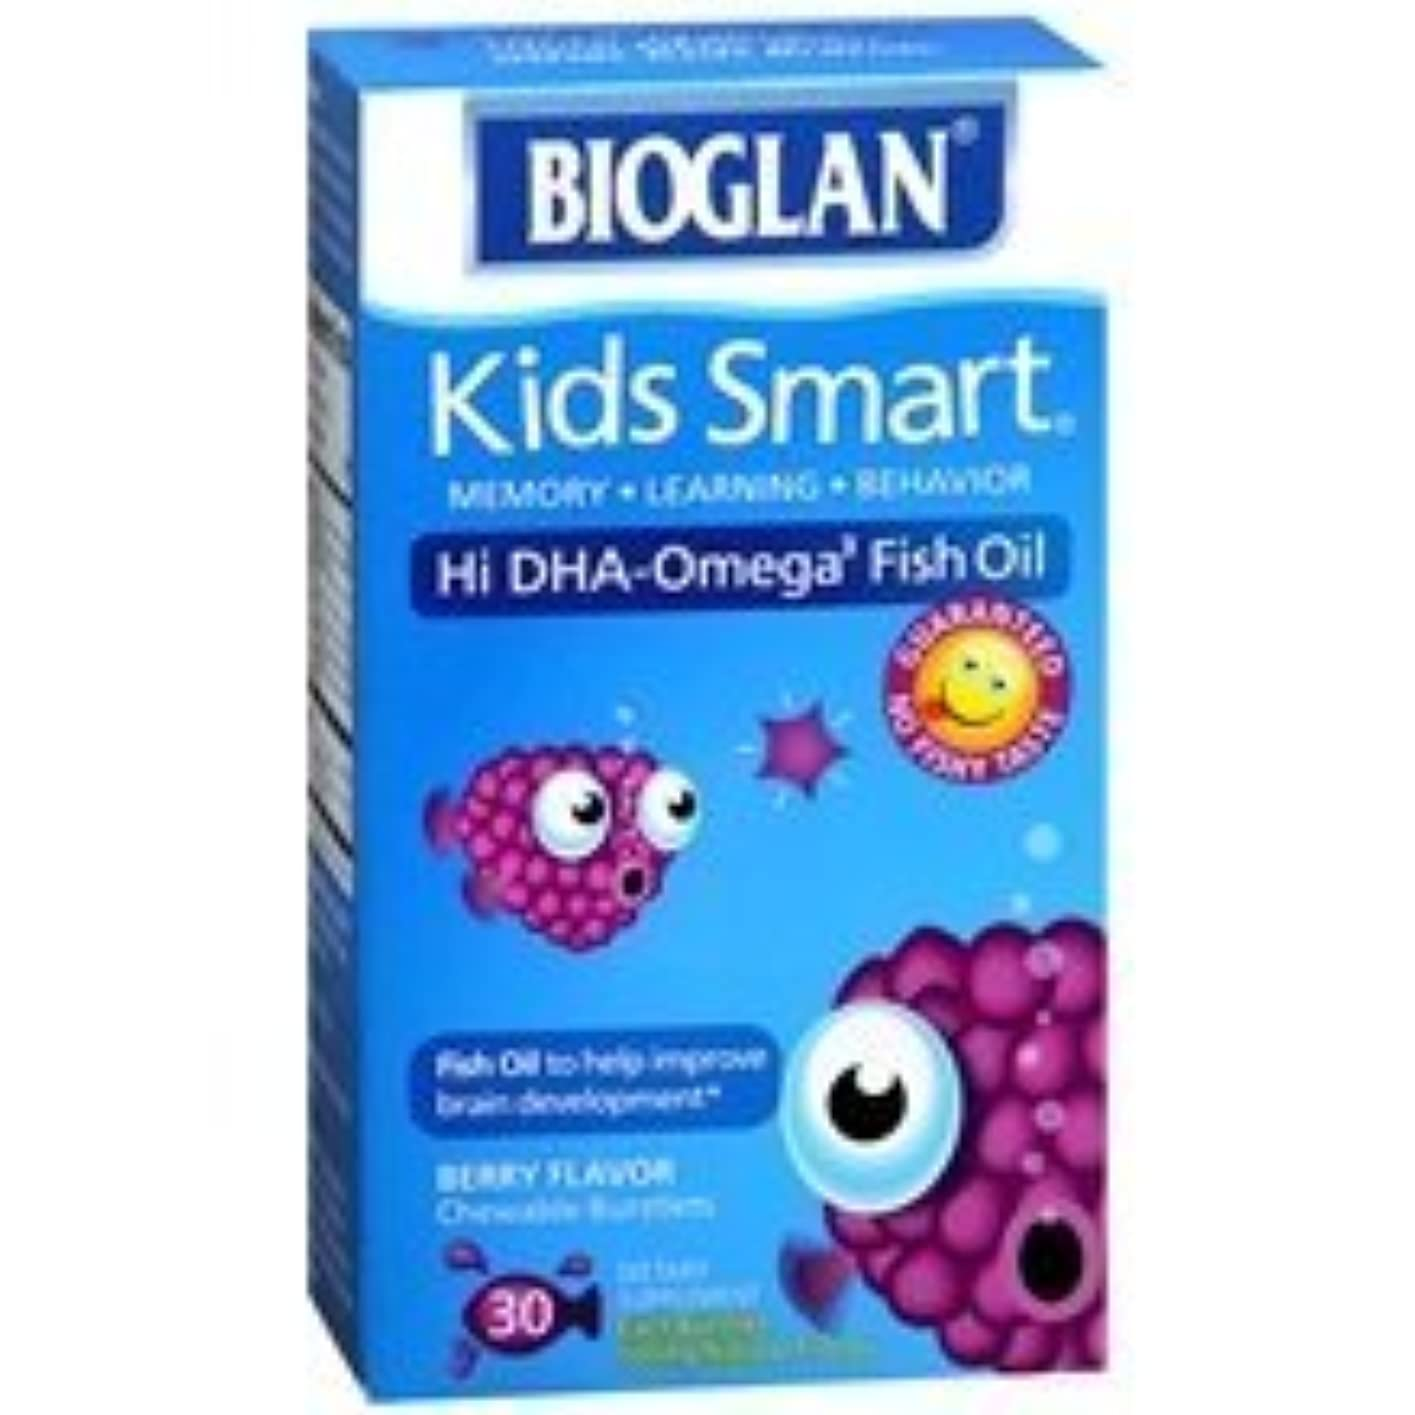 侵略人柄預言者Bioglan Kids Smart Hi DHA-Omega3 Fish Oil 500 mg Dietary Supplement Burstlets Berry Flavor 30.0 ea. (Quantity...